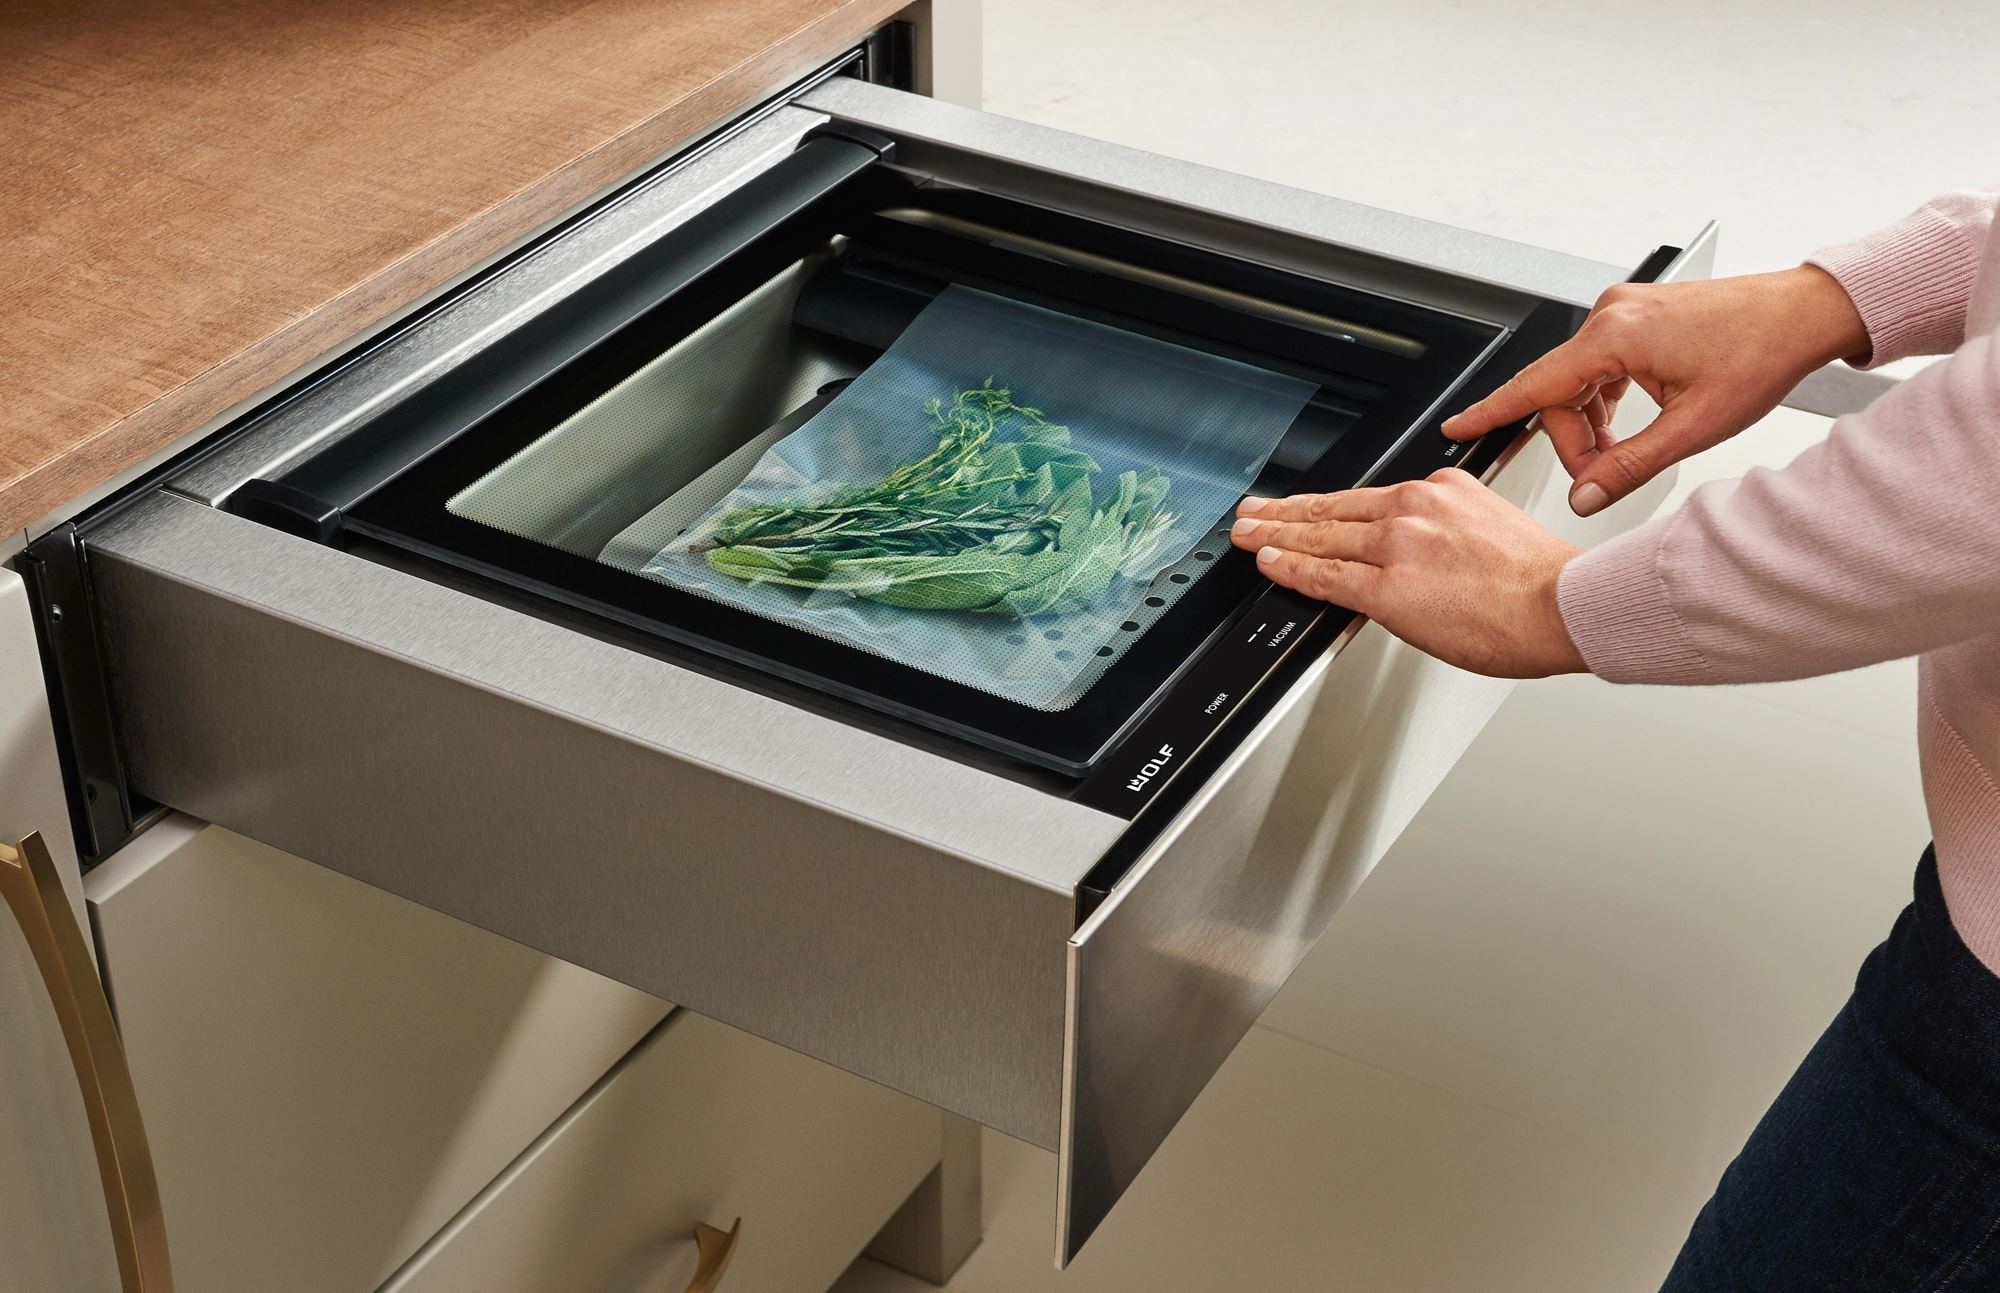 Wolf vacuum seal drawers remove air and seal foods or liquids for easy storage, marinating, and cooking.